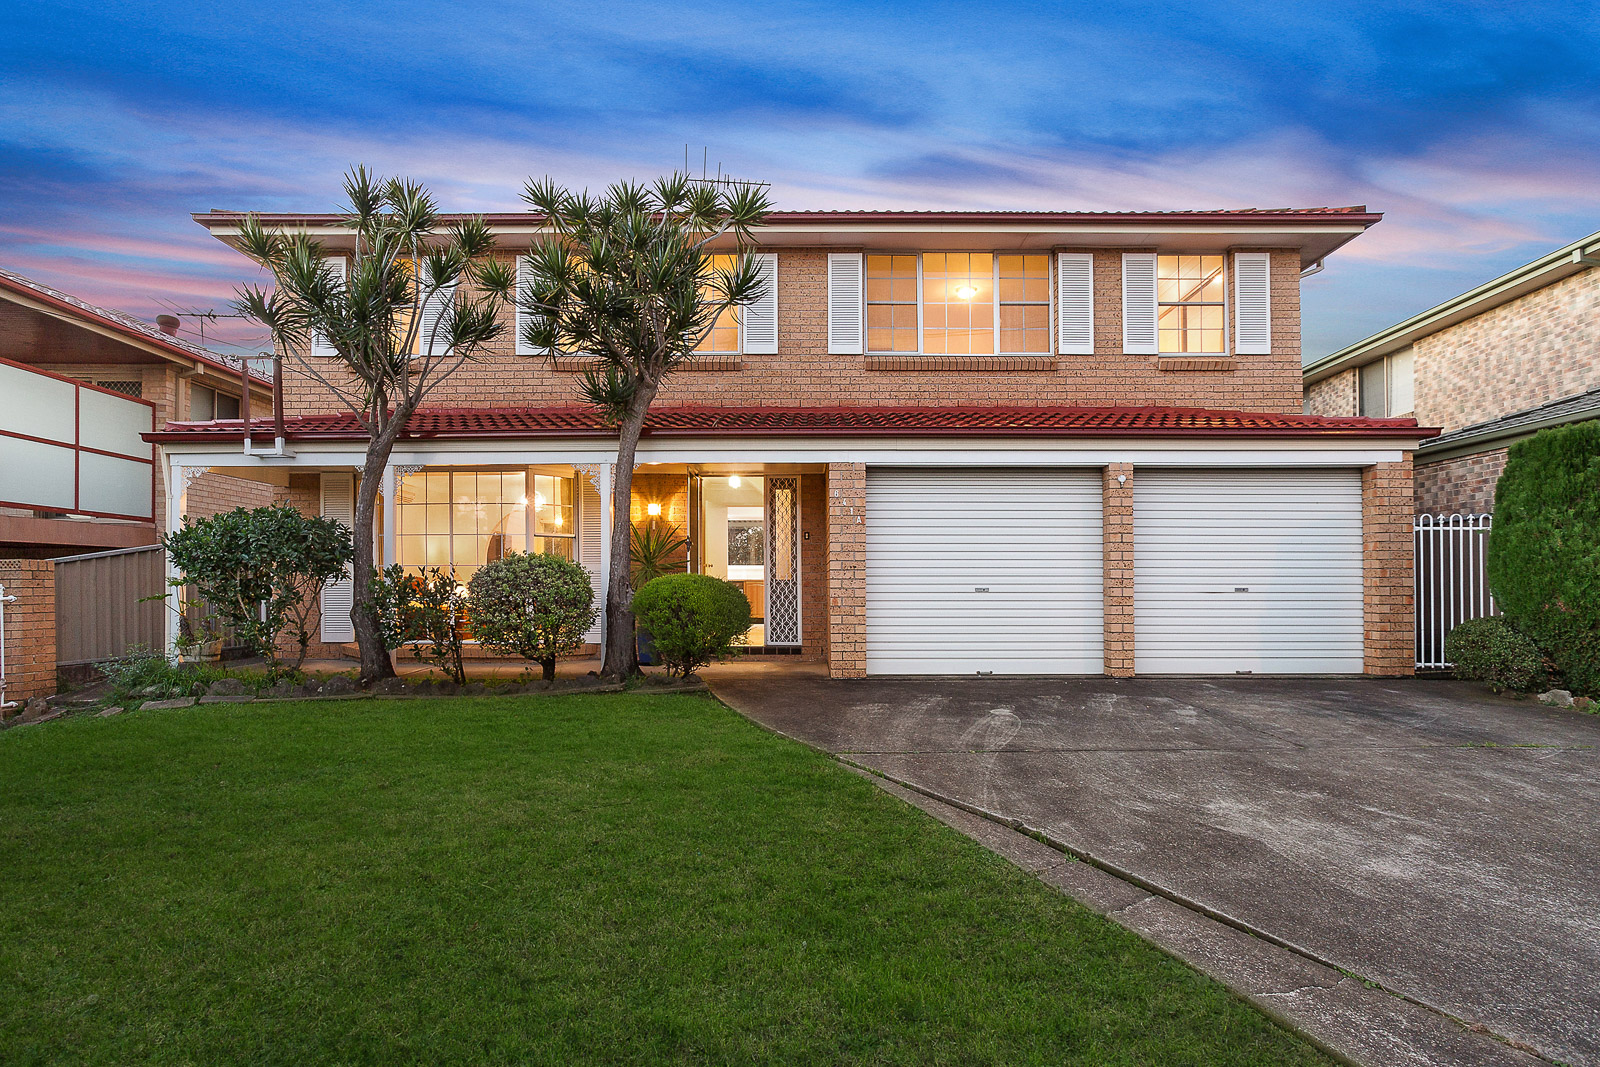 Price guide $900,000 to $950,000